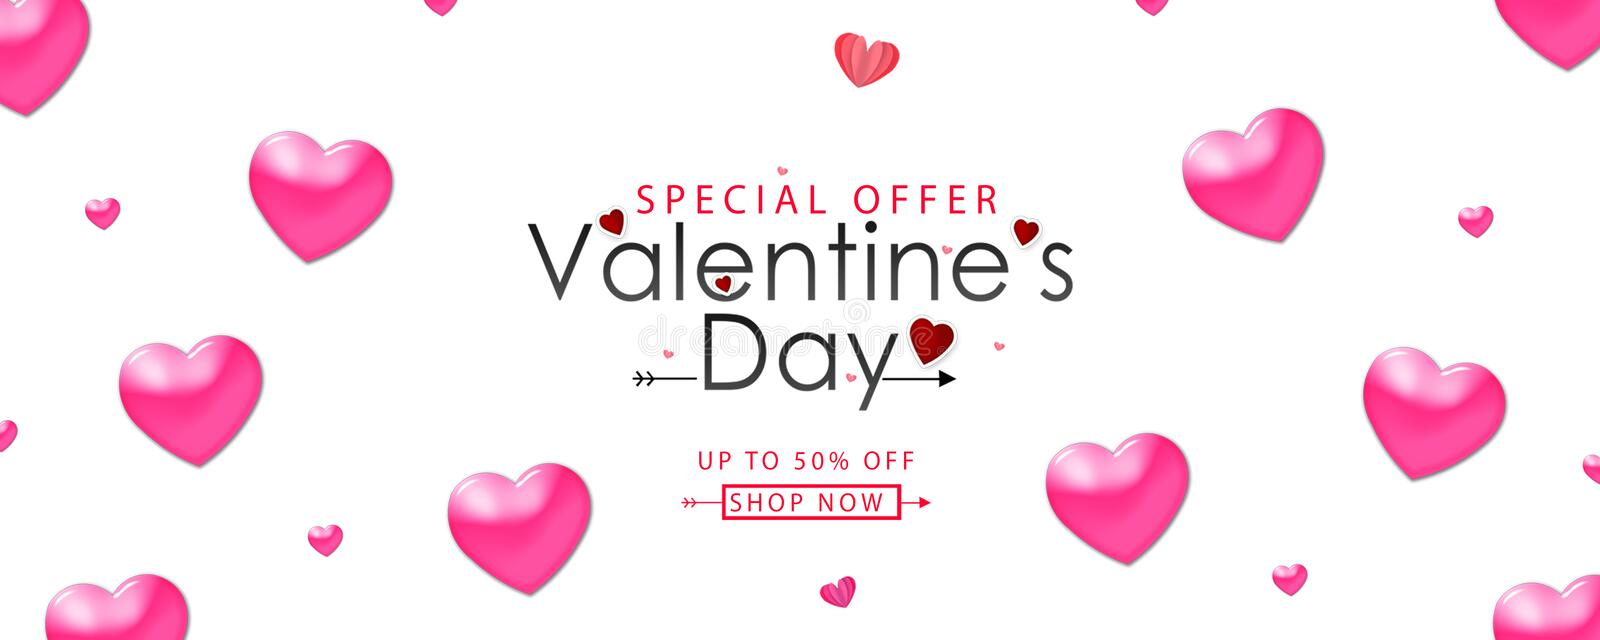 Valentine's day sale vector illustration. Banner design with beautiful pink color hearts royalty free illustration